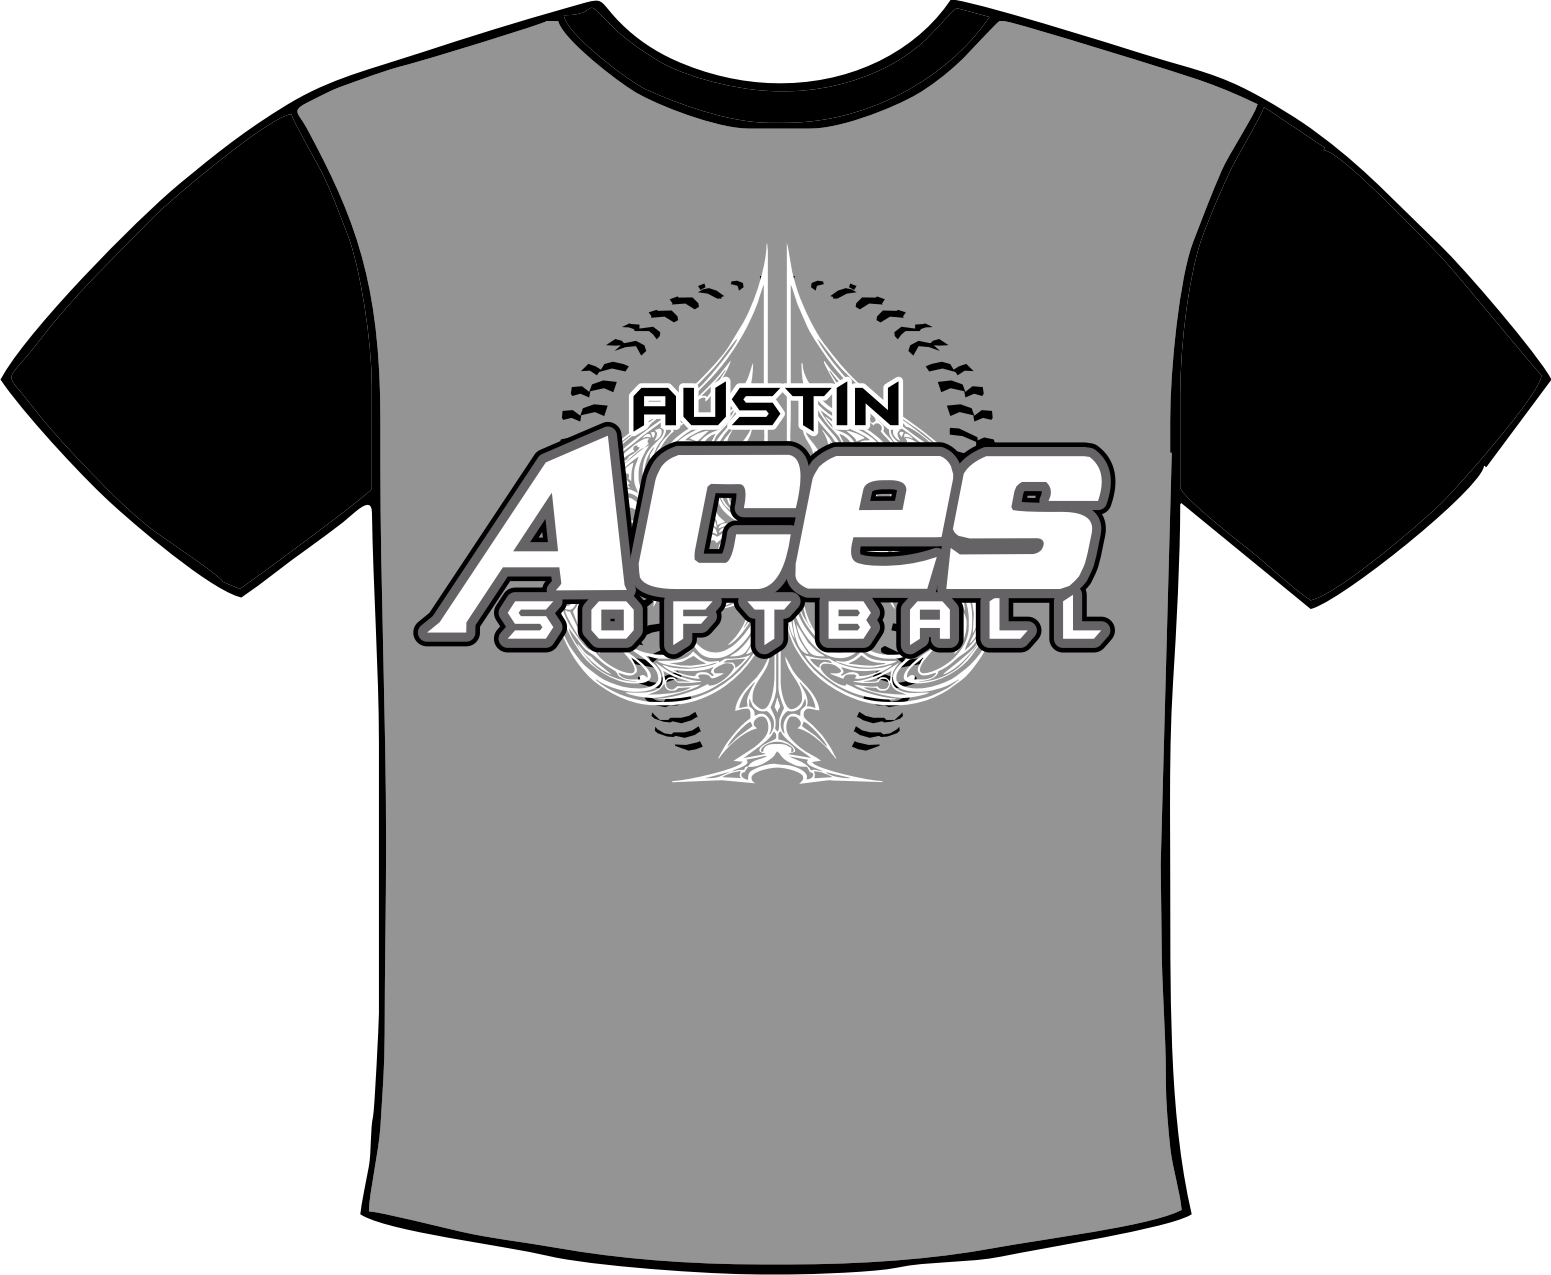 custom t shirt design airsoft team design idea design team t - Team T Shirt Design Ideas